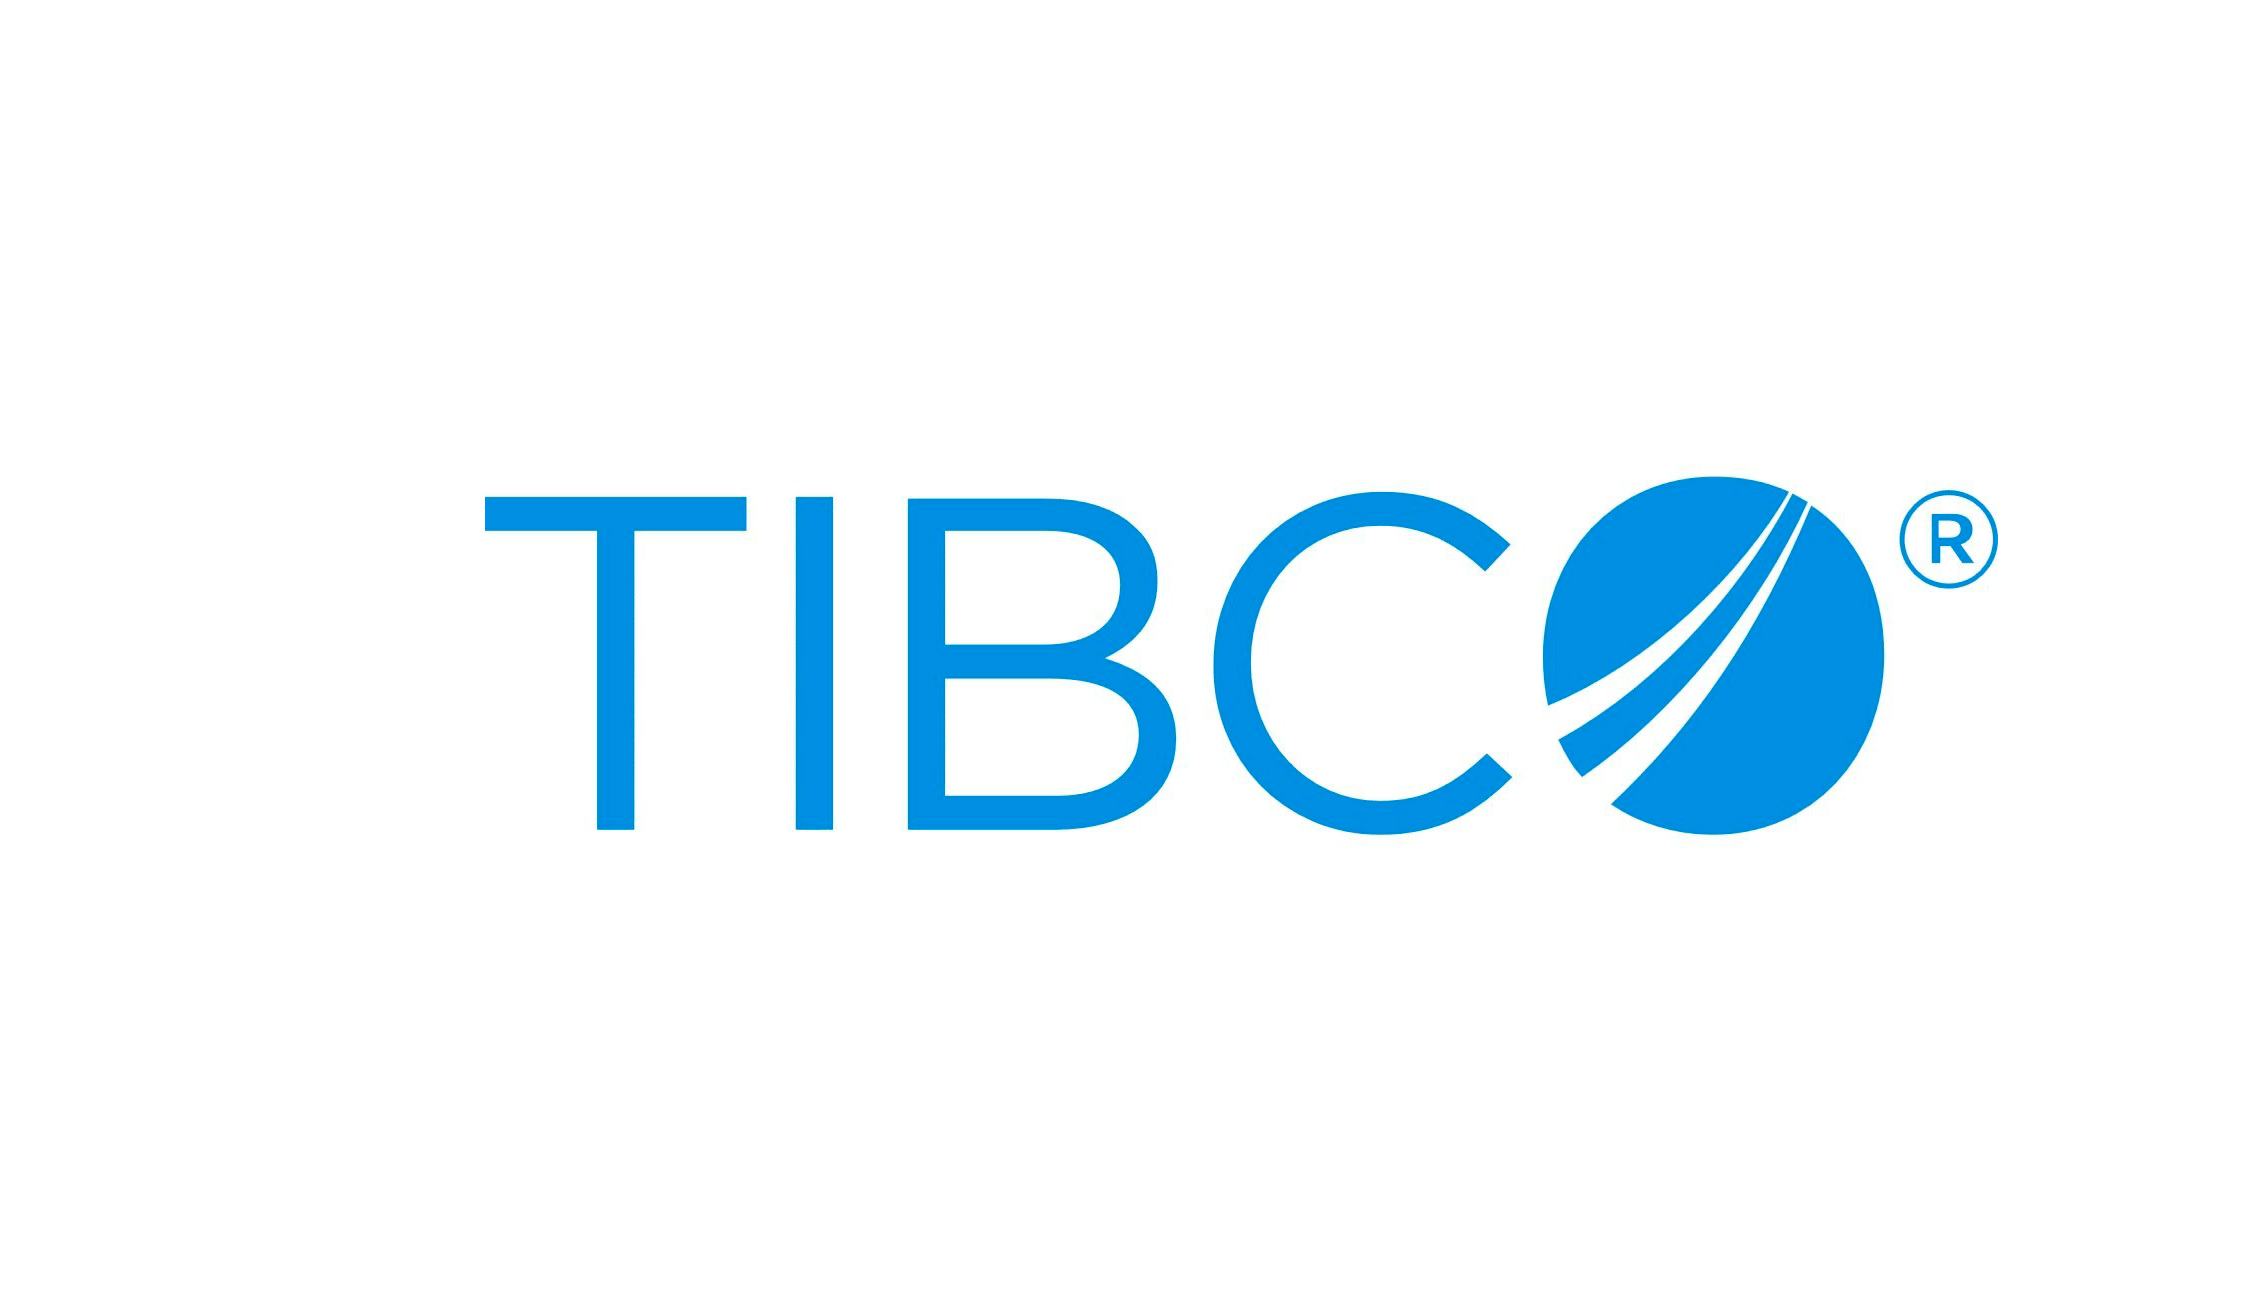 TIBCO Recognised as a Finalist in the 2021 Microsoft Azure Partner of the Year Awards